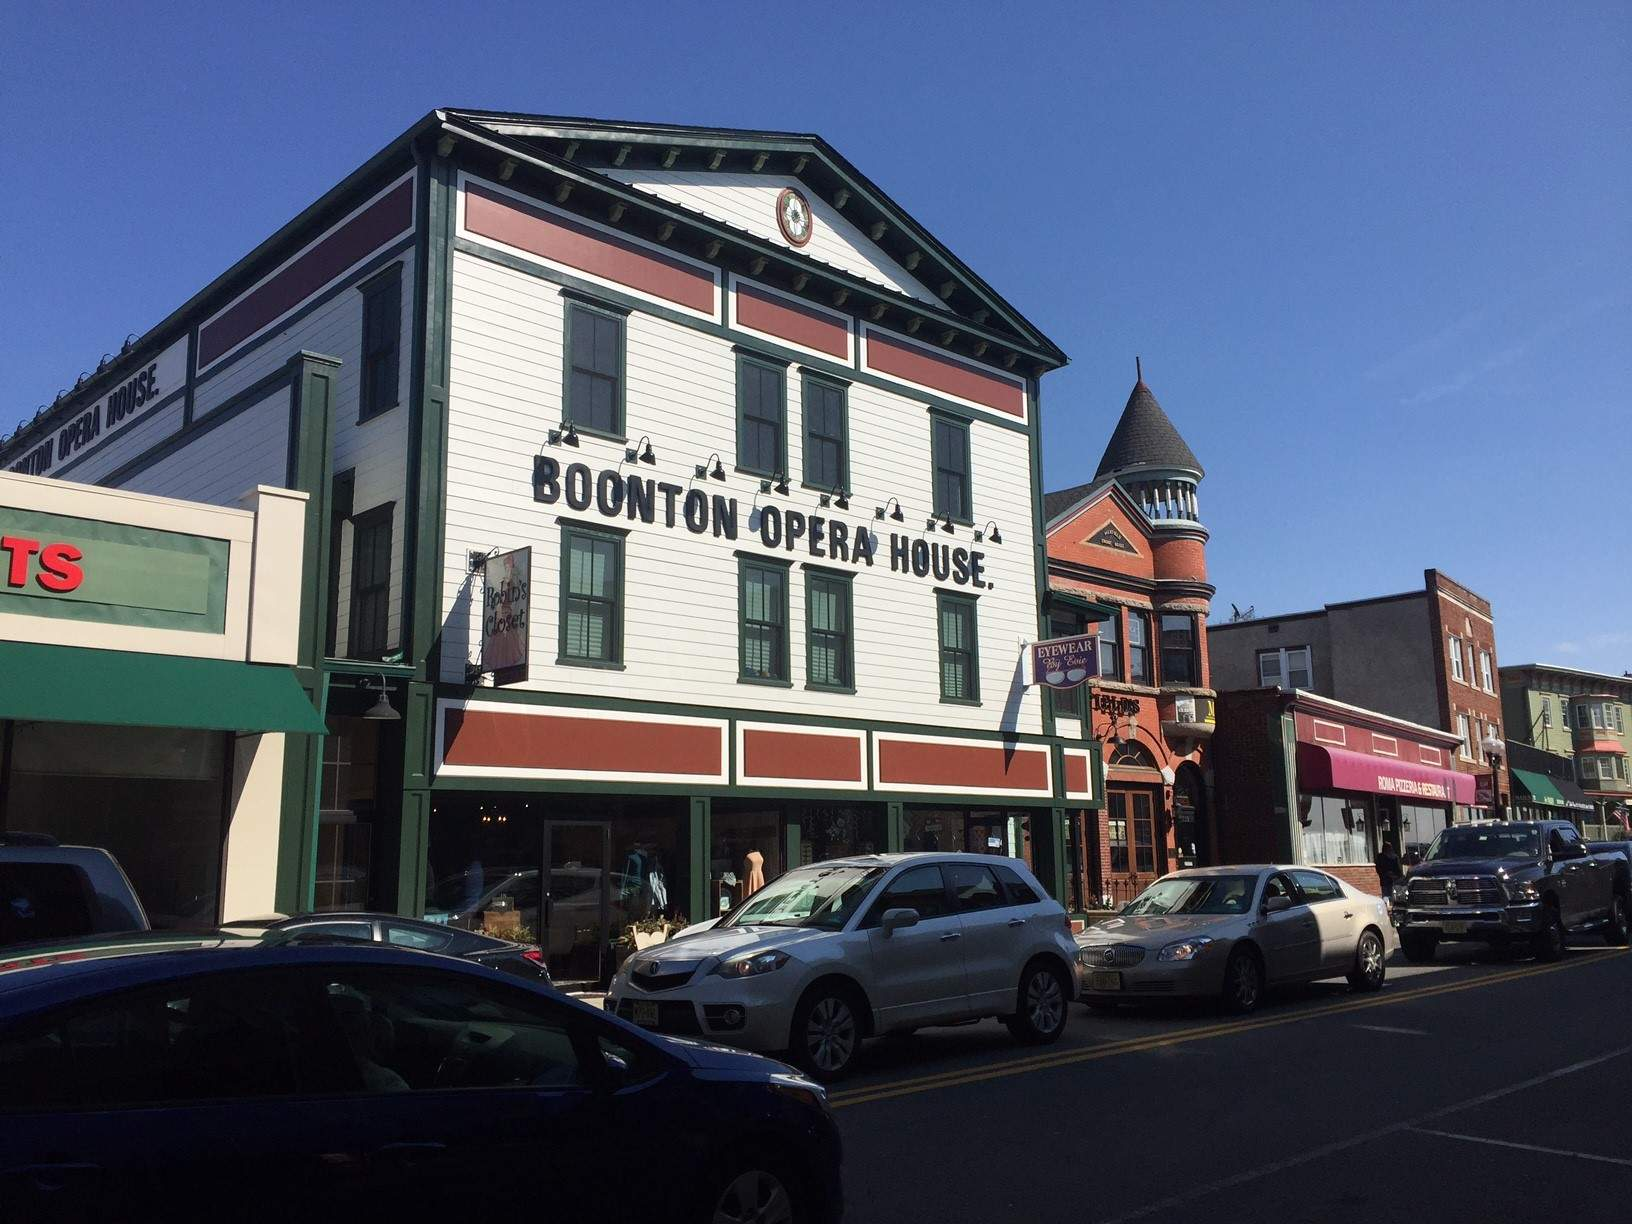 The historic Boonton Opera House, which the marketing firm iMedia has moved into, still has its sign intact, overlooking the town's Main Street.